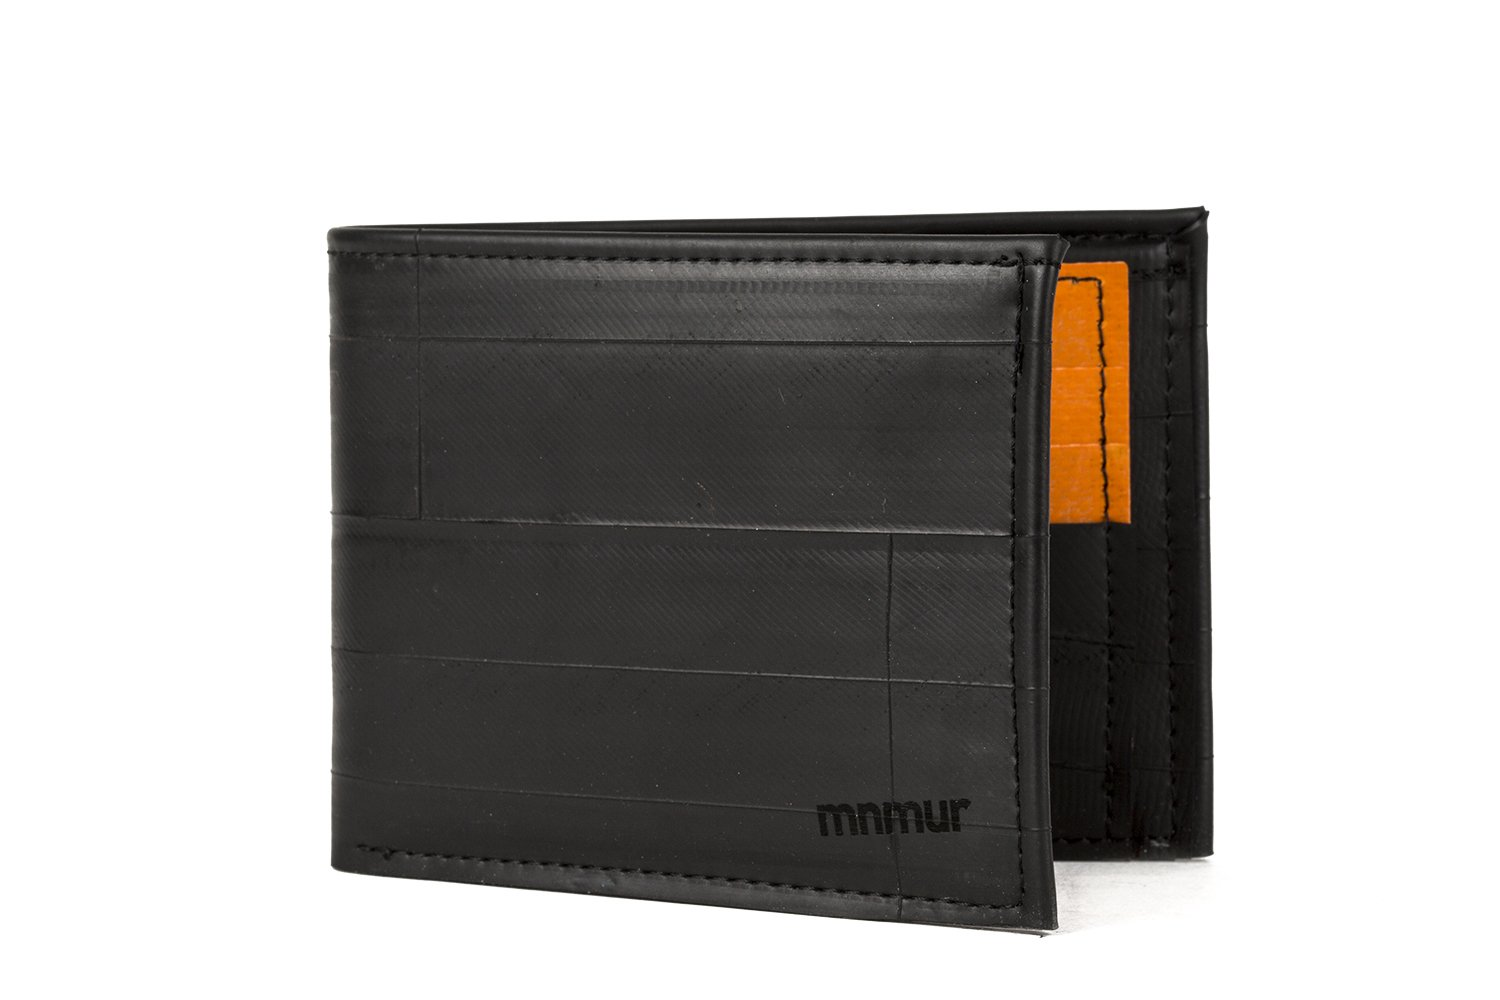 Classic bifold men's wallet with orange credit card holder // Made from recycled inner bicycle tubes // Small and pocket-size // Handmade in Italy